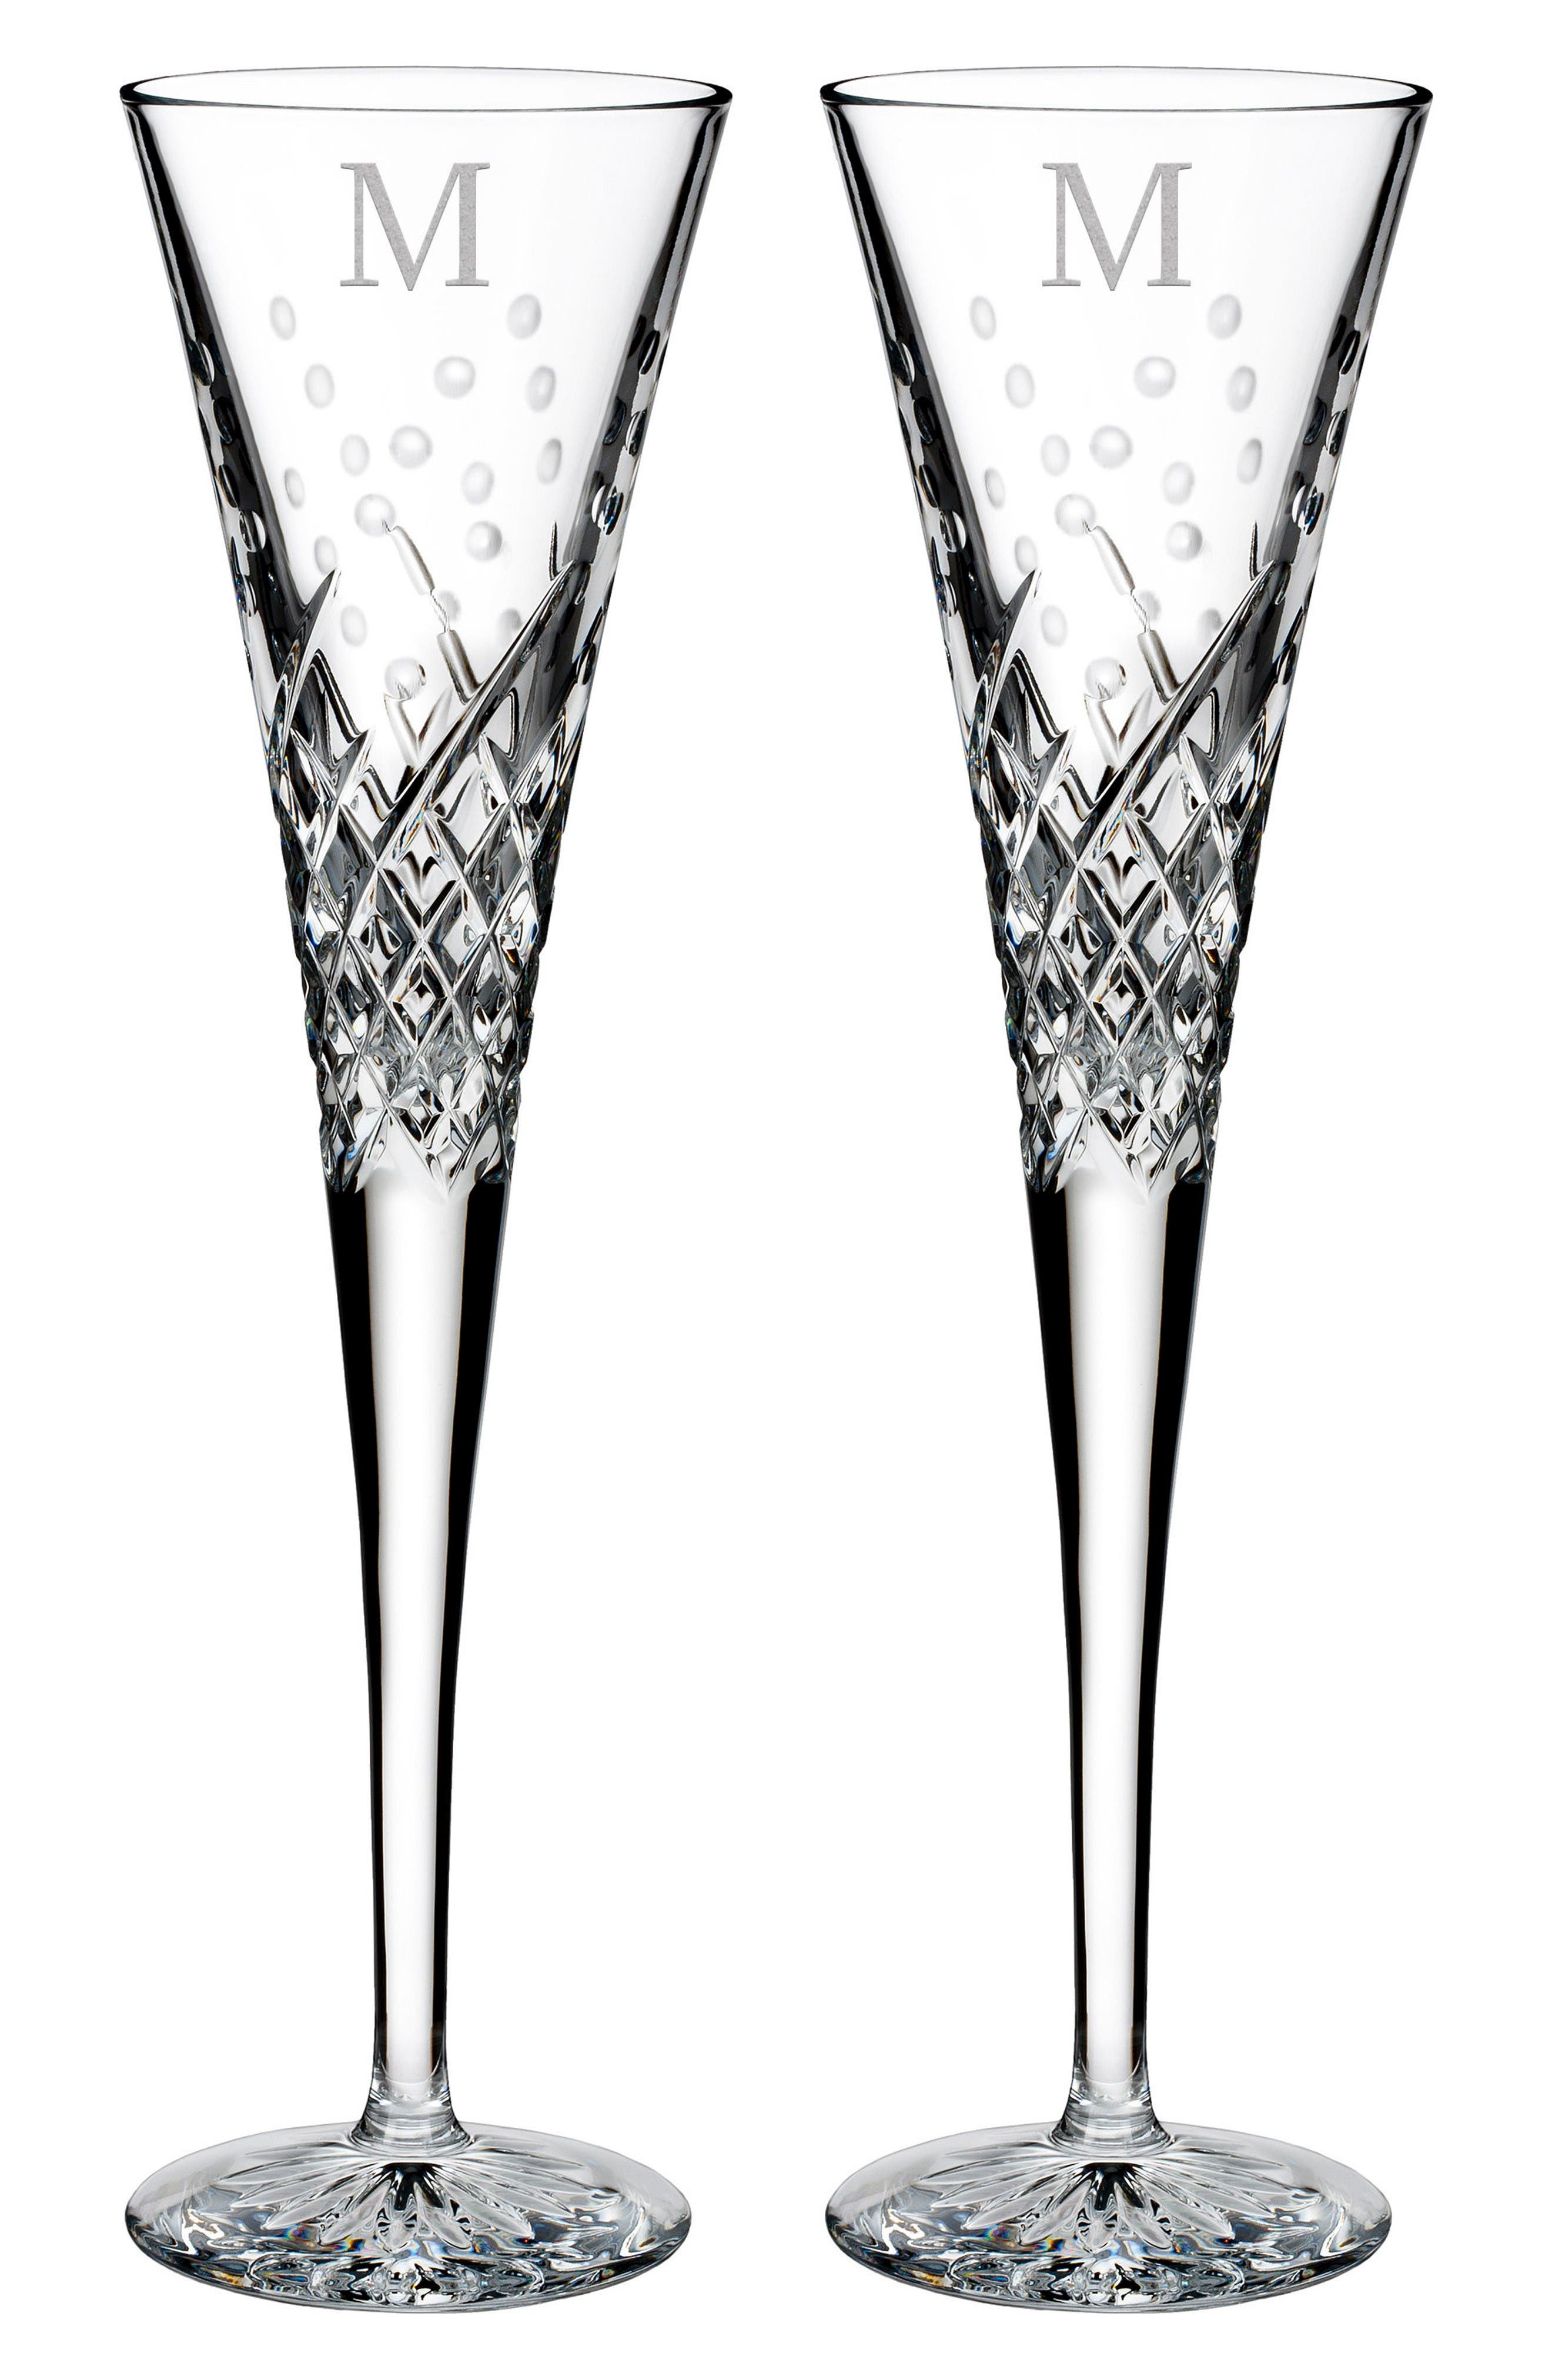 Main Image - Waterford Happy Celebrations Set of 2 Monogram Lead Crystal Champagne Flutes